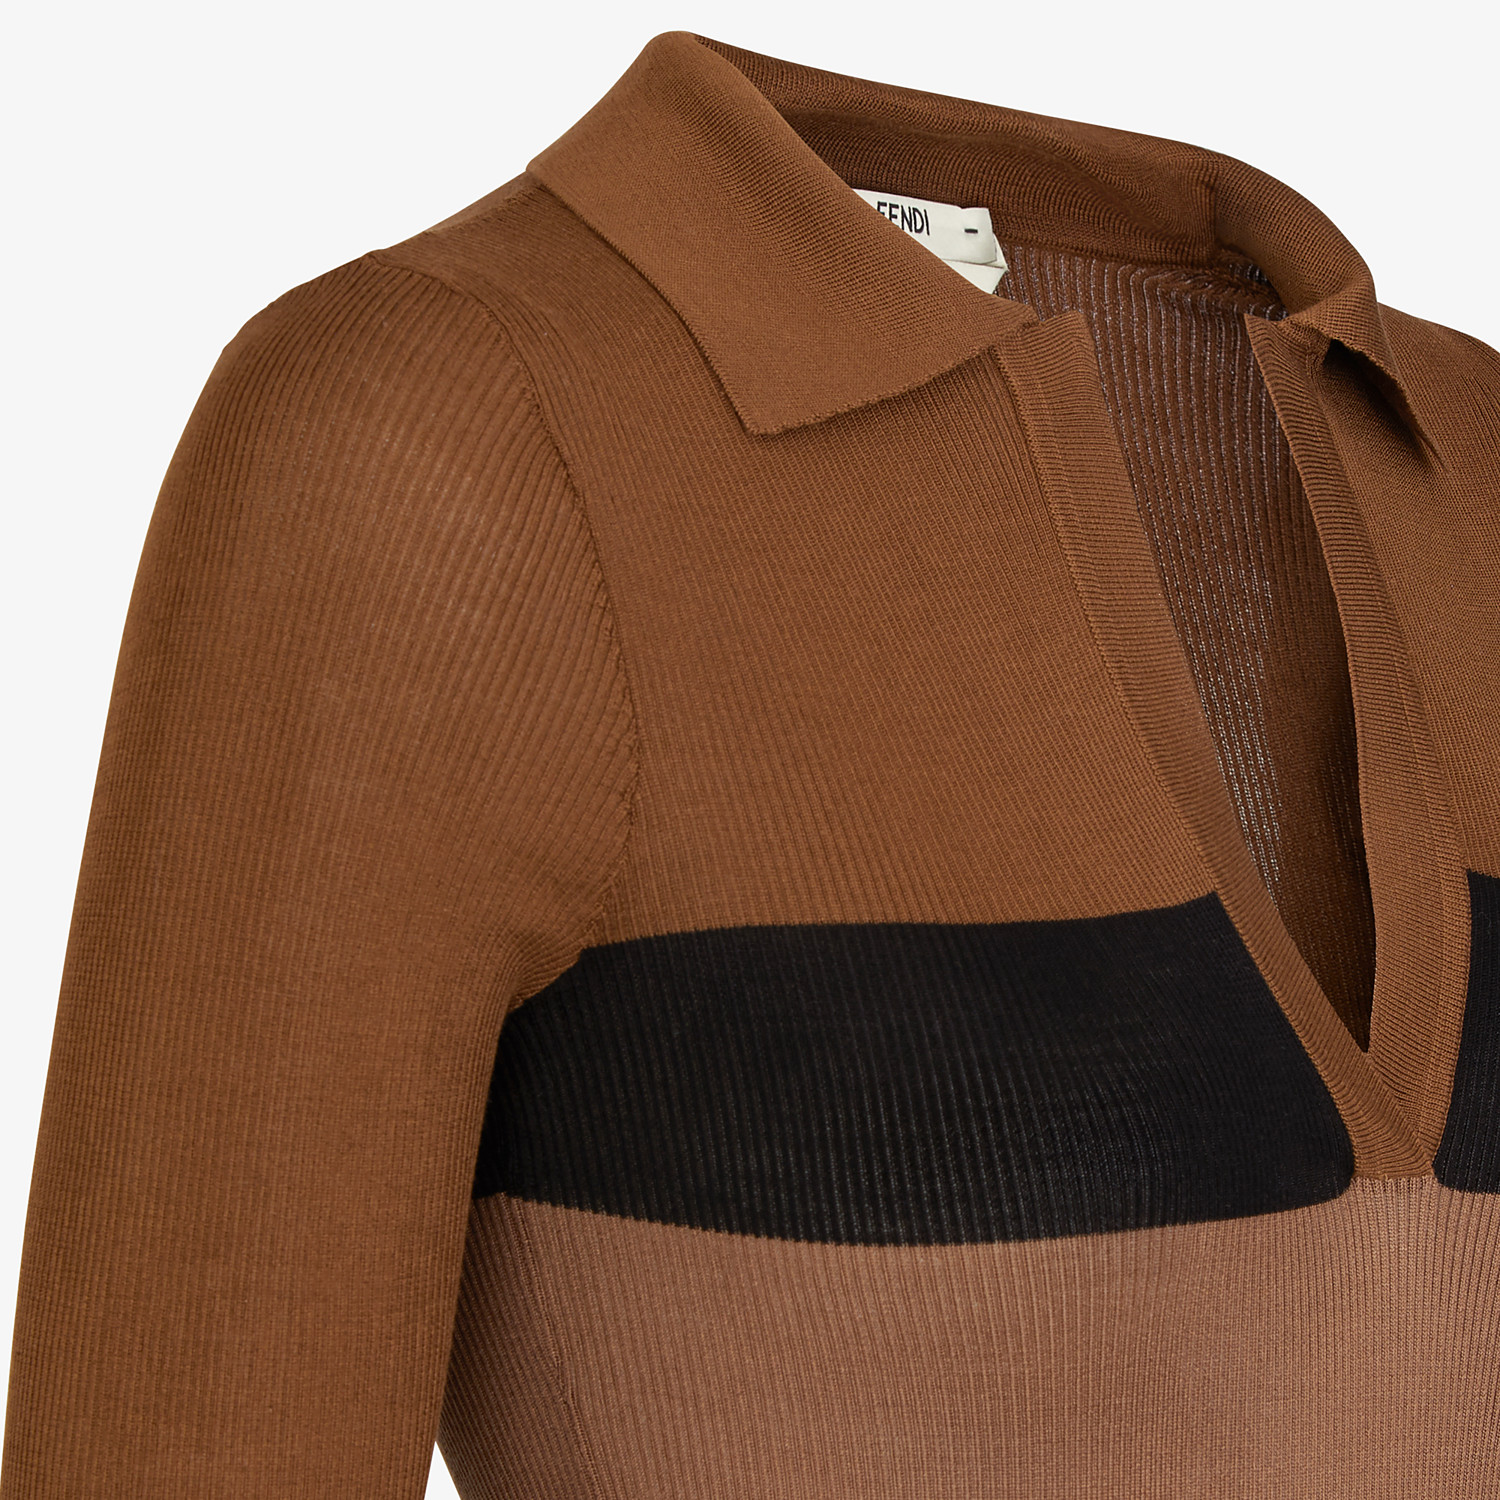 FENDI SWEATER - Brown silk sweater - view 3 detail